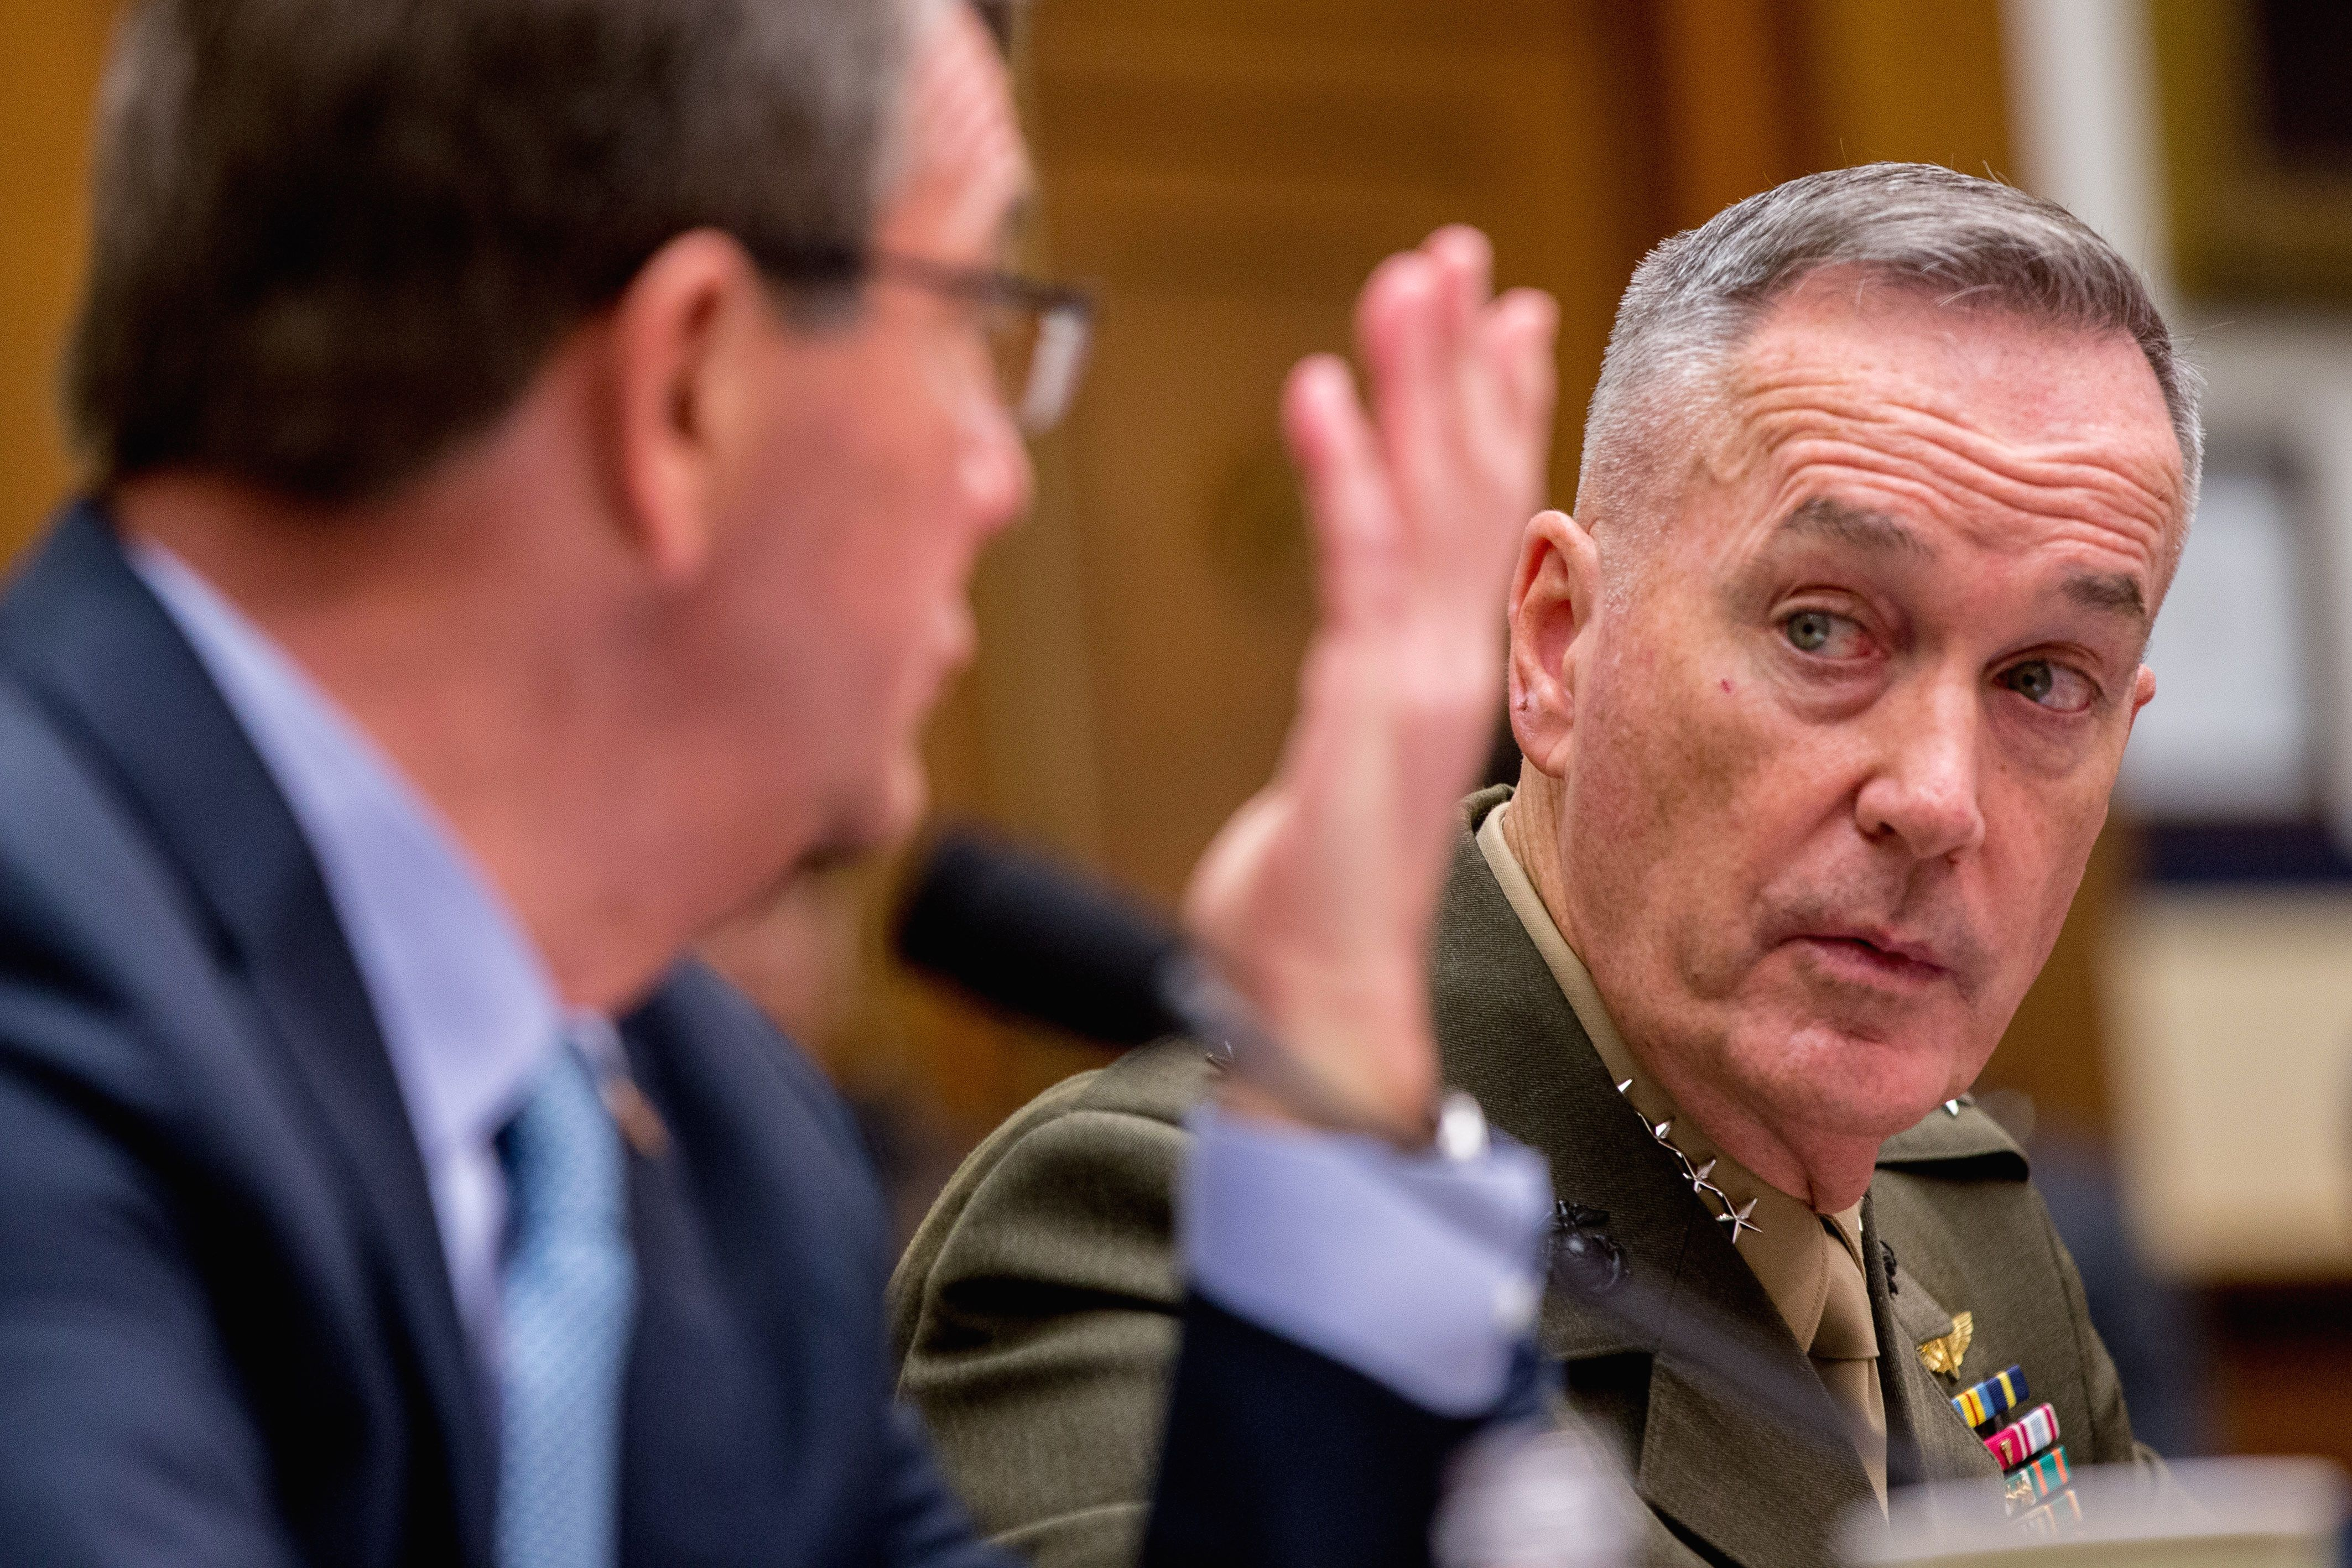 """The nation's top military officer on Tuesday said the U.S. has """"not contained"""" the Islamic State, contradicting President Obama's reassuring remarks last month just before the terrorist attacks in Paris."""